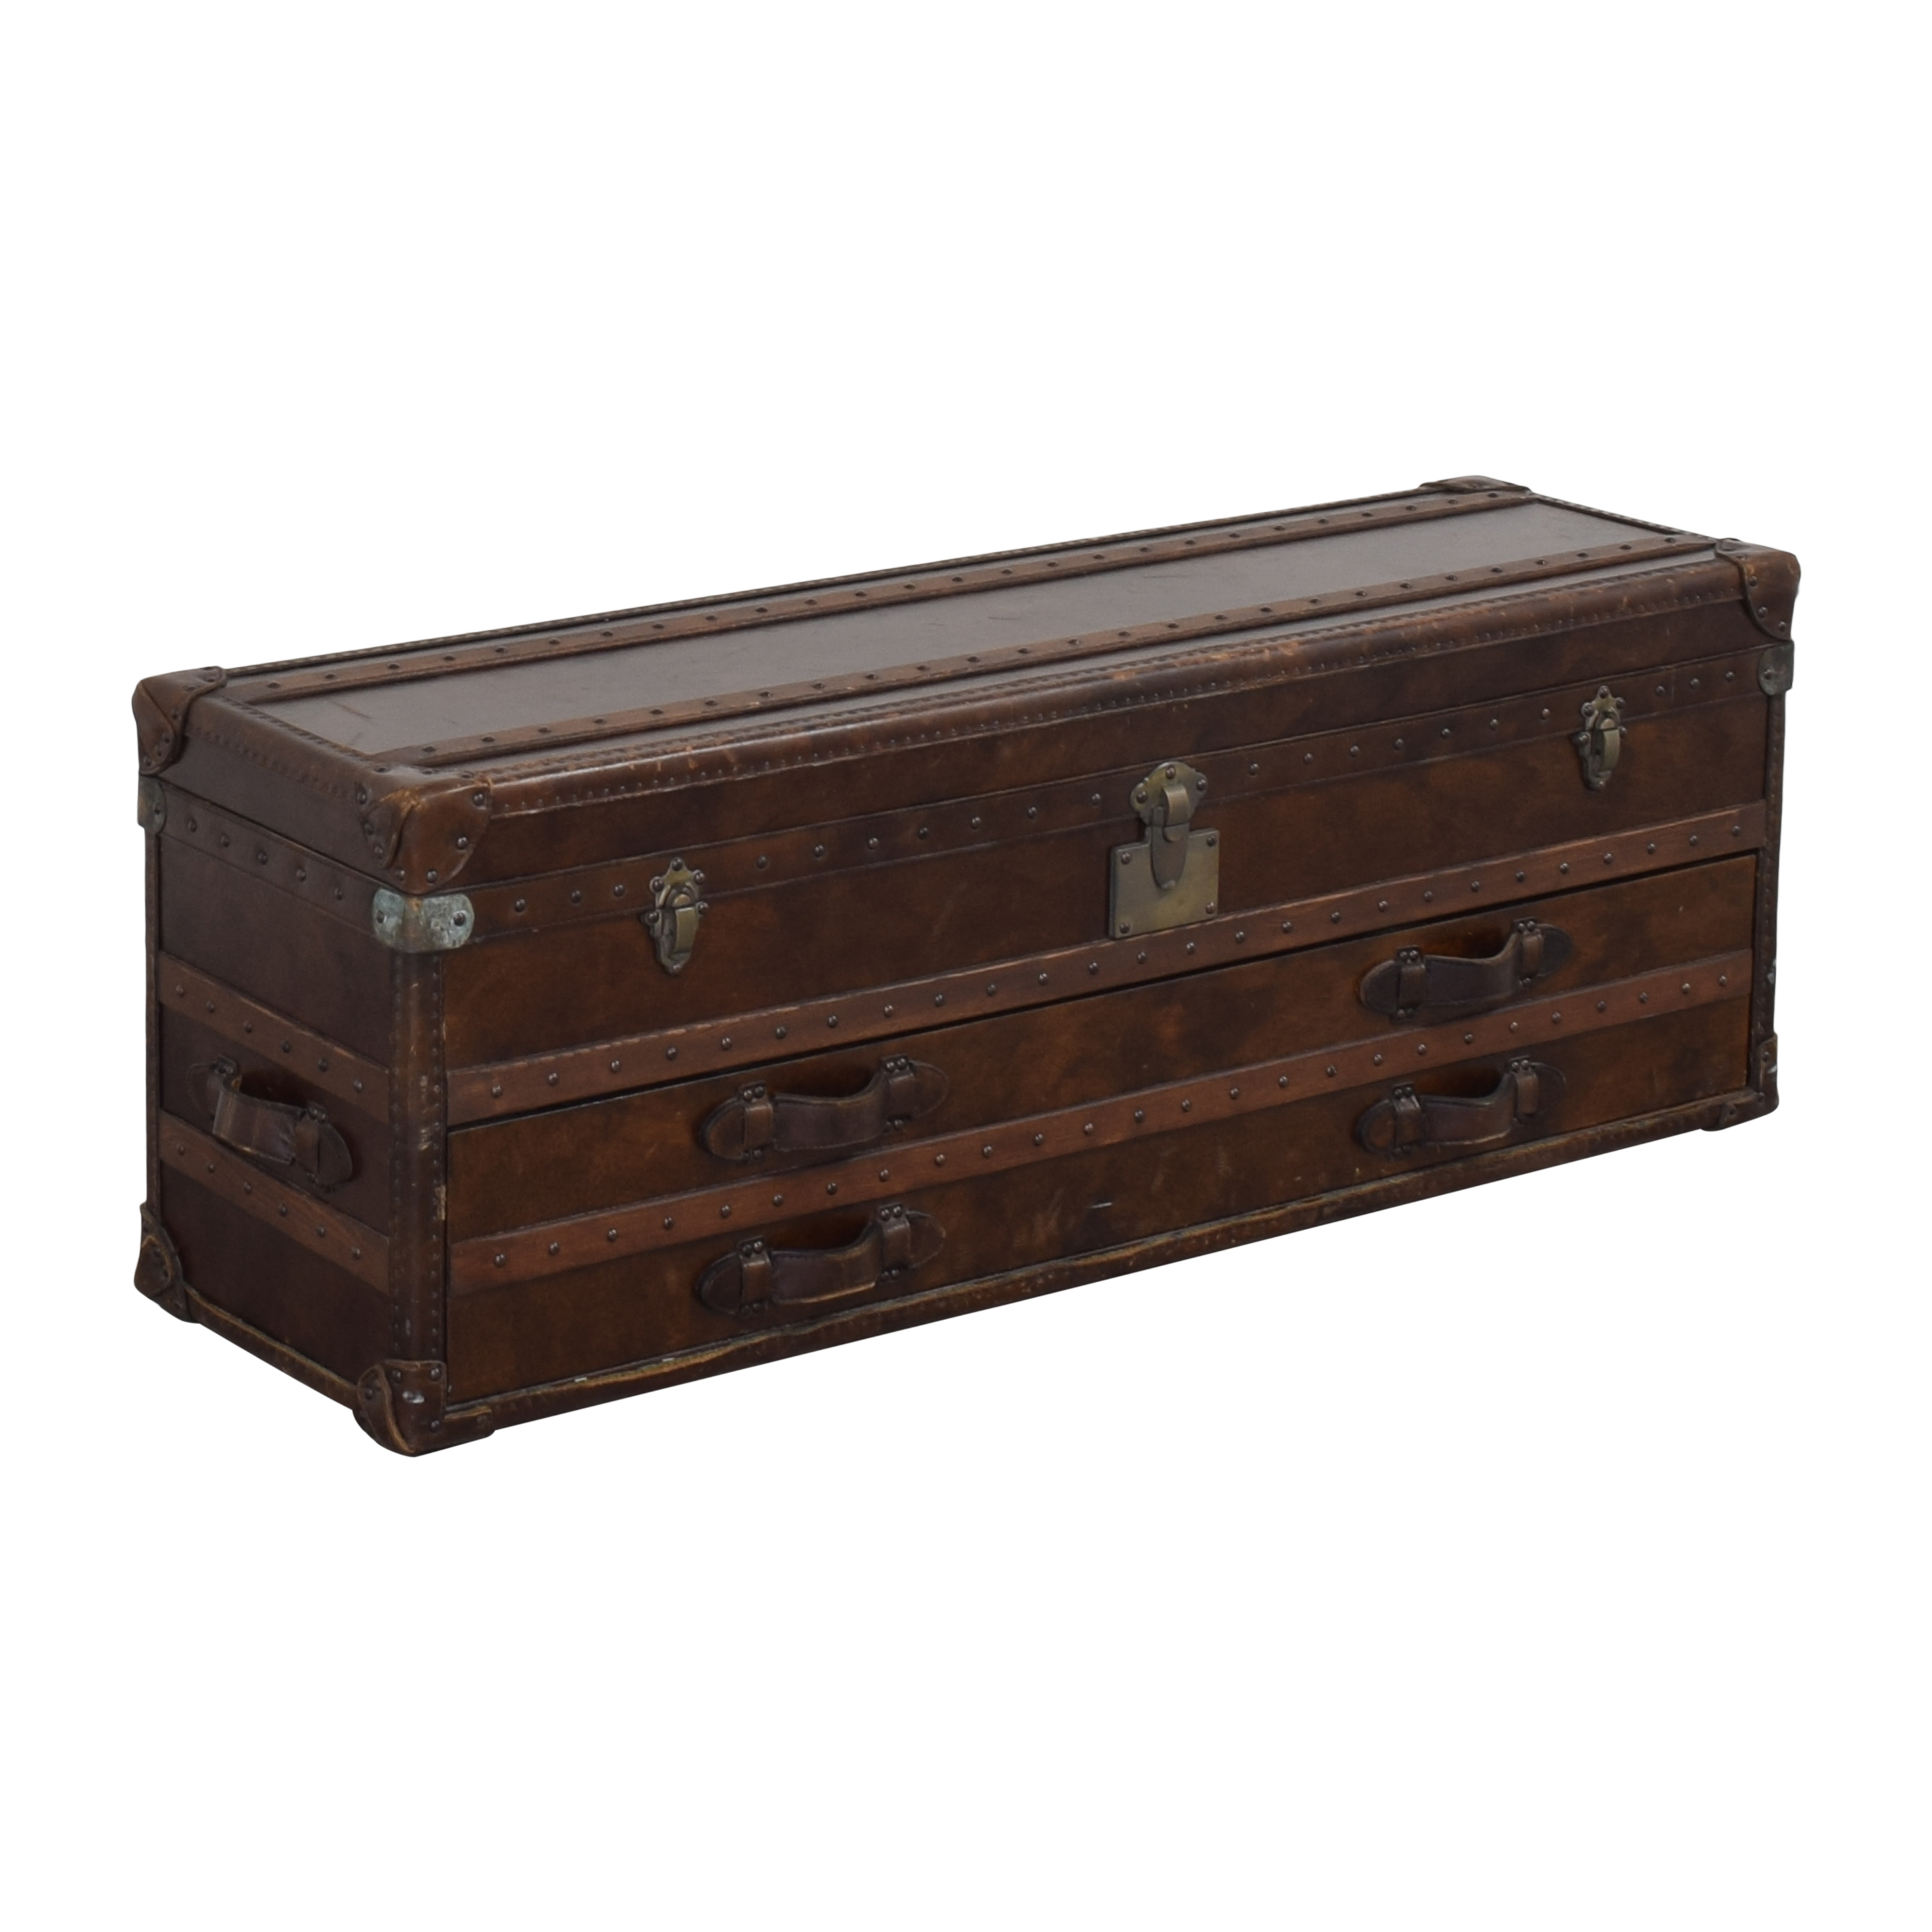 Restoration Hardware Restoration Hardware Mayfair Steamer Trunk Low Chest price